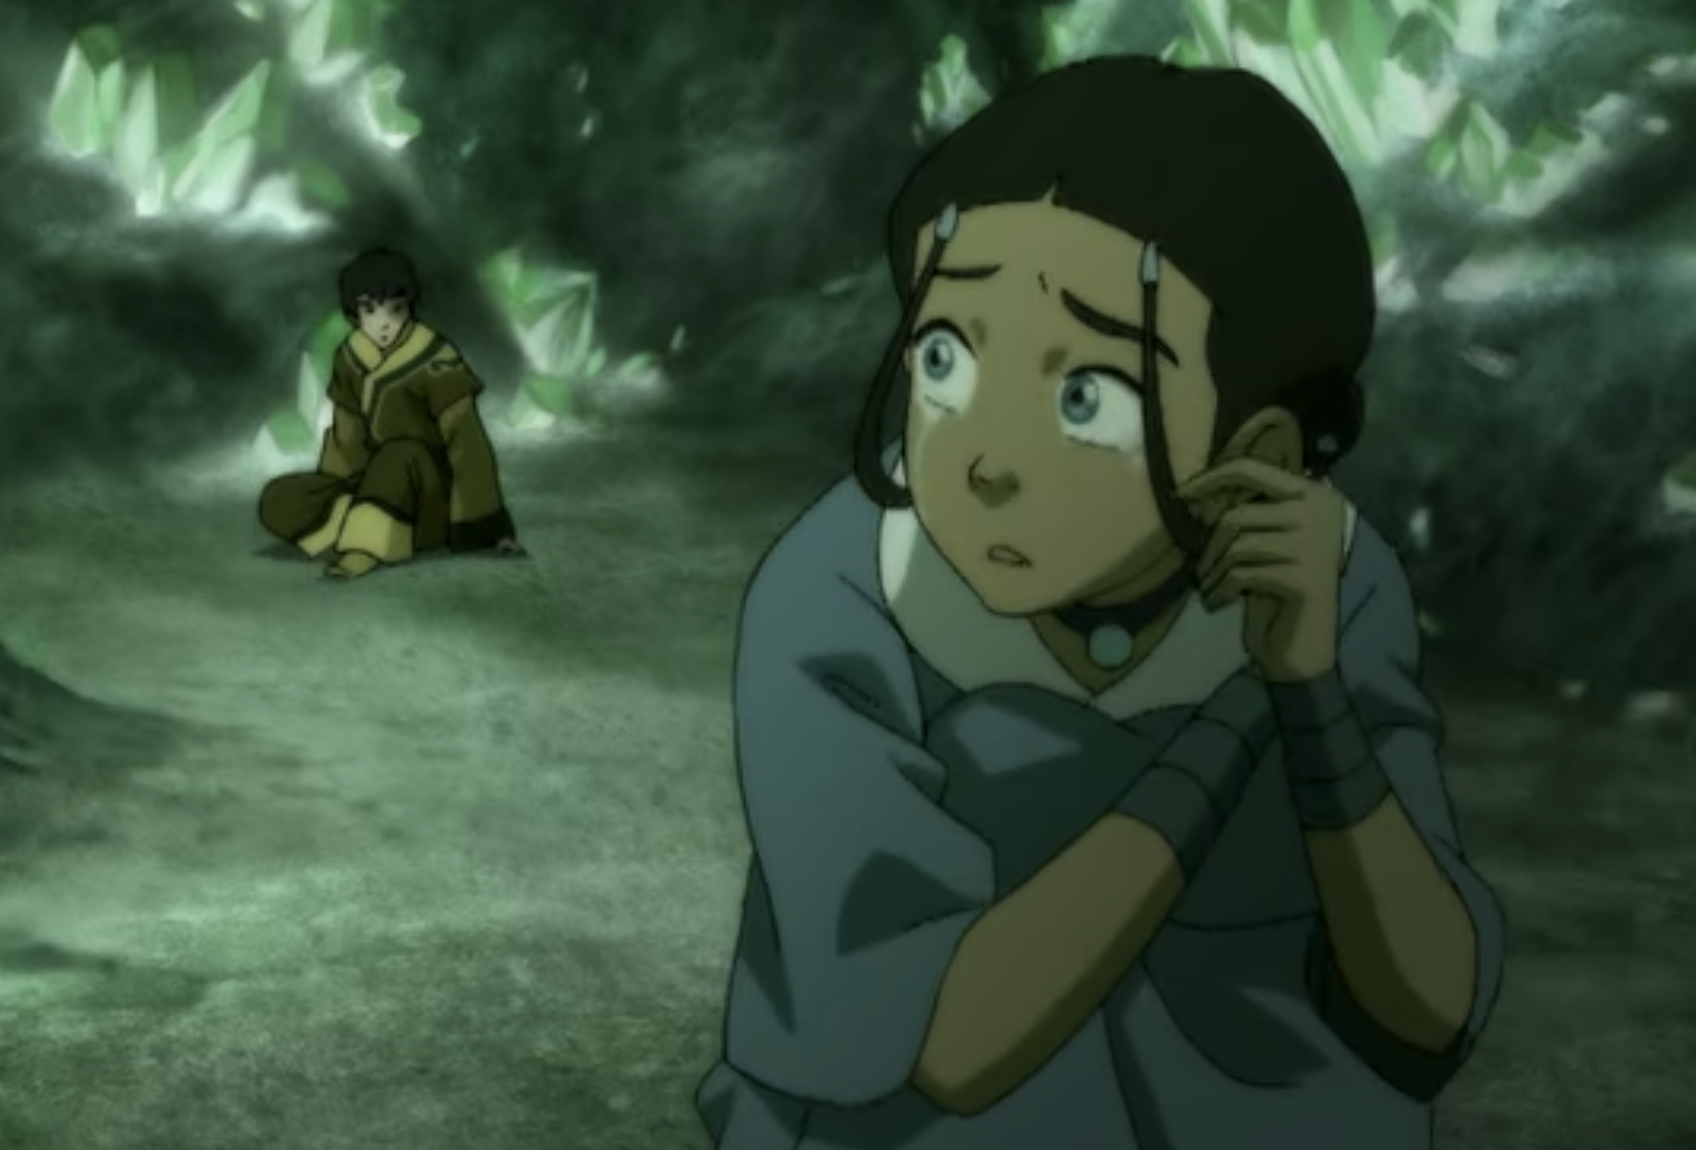 Katara crying while looking back at Zuko in a cave.